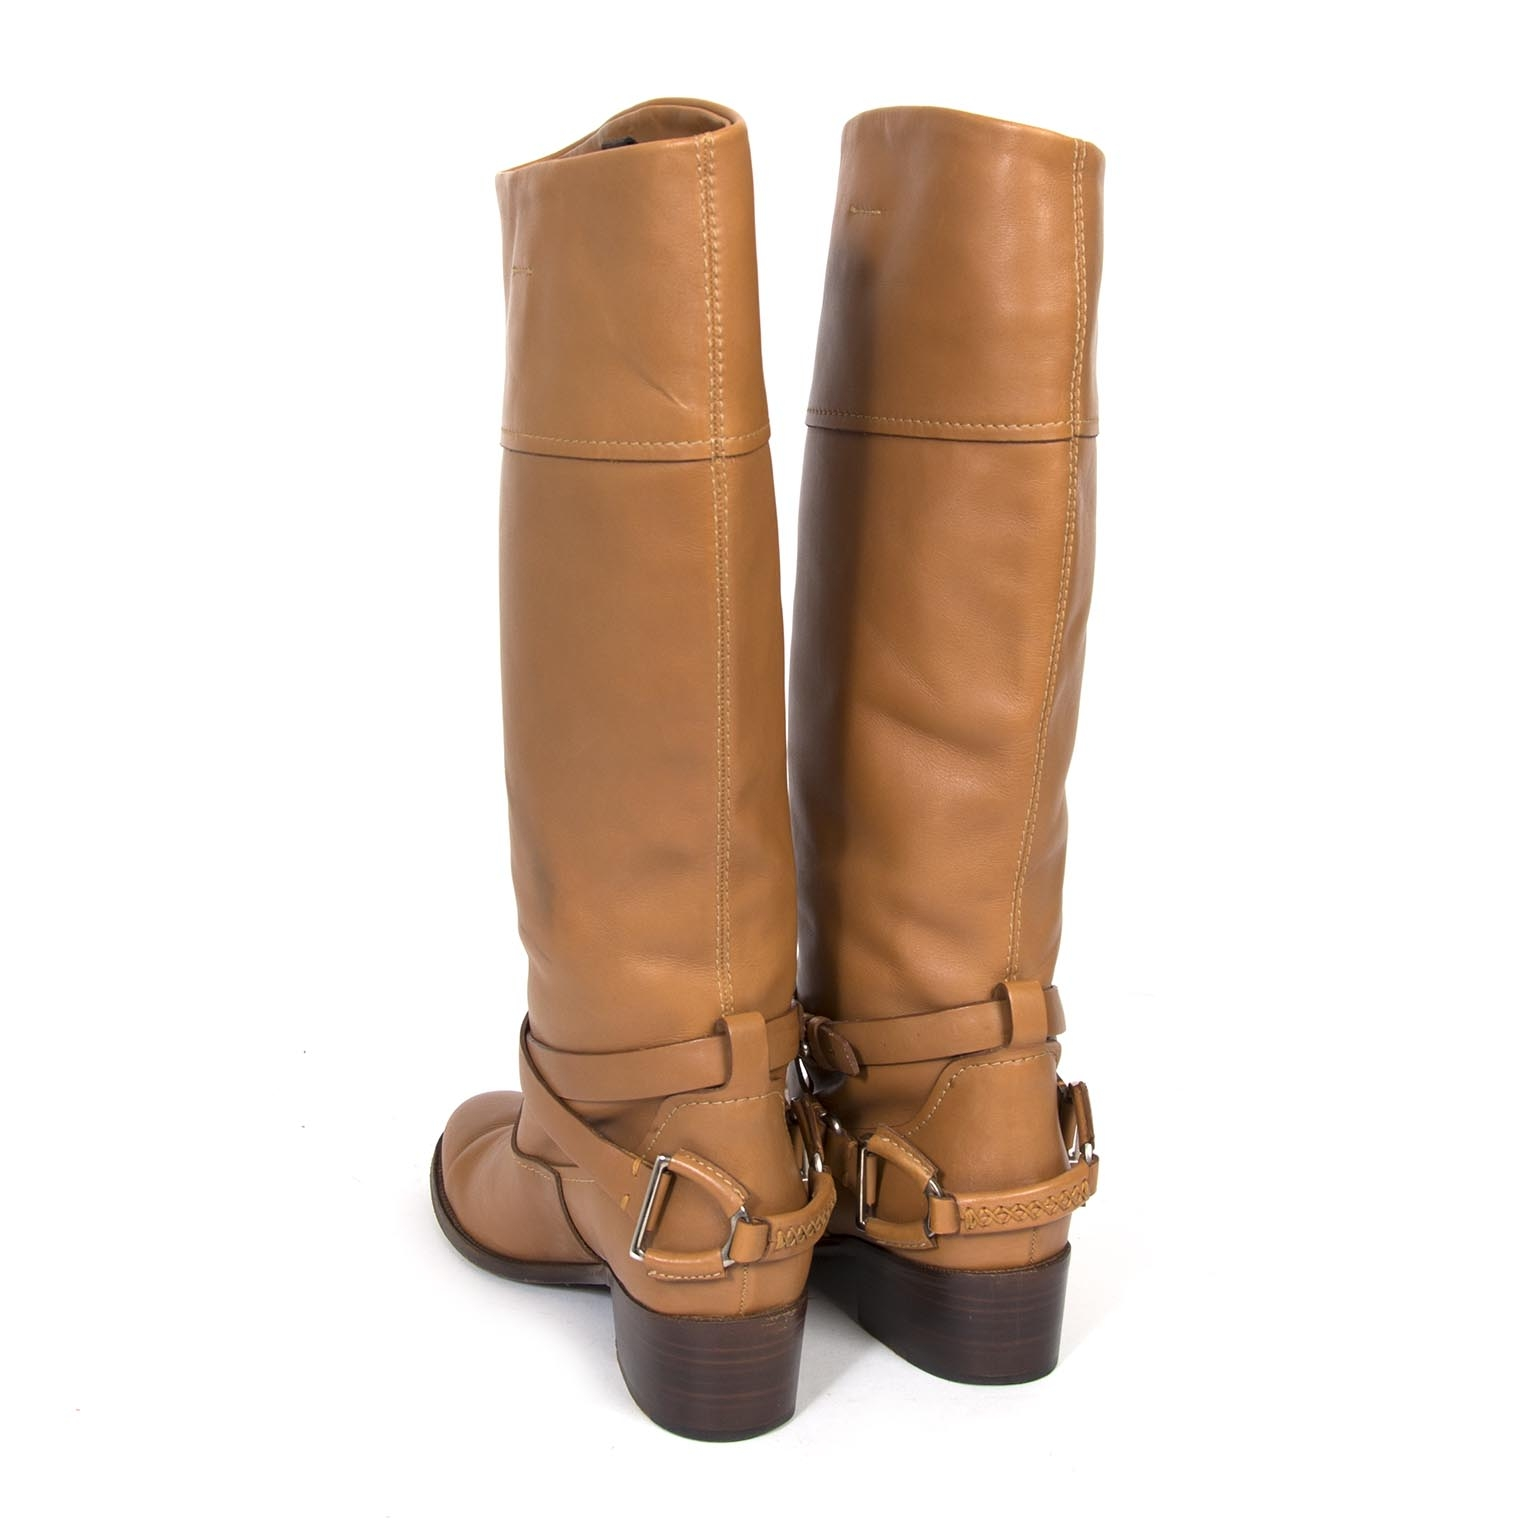 buy authentic ralph lauren brown leather boots now at Labellov vintage fashion webshop belgium